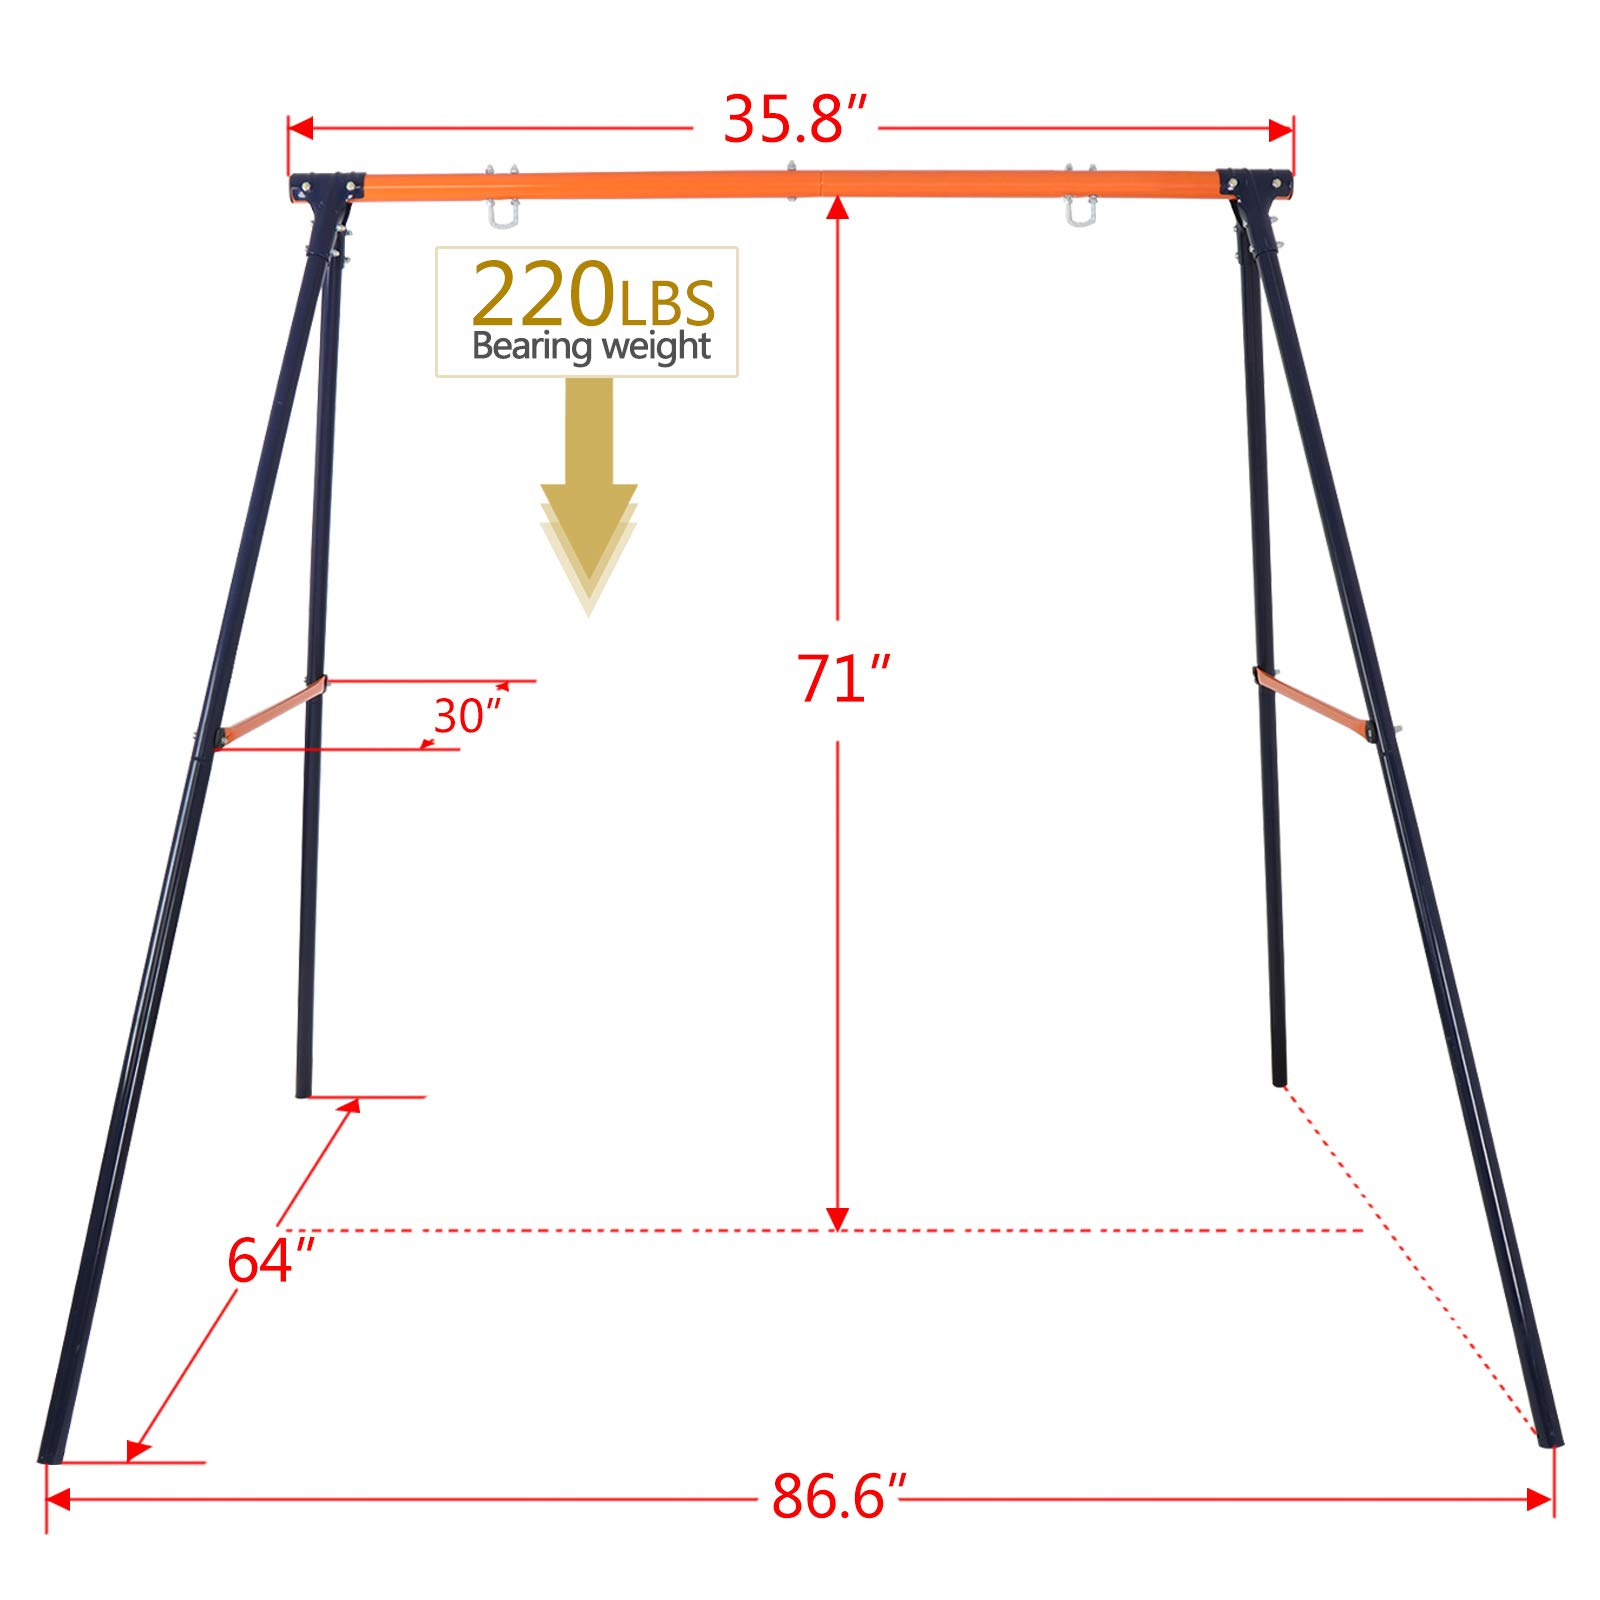 ZENY Swing Set - 24'' Spinner Web Tree Swing Nylon Rope + All Weather Steel A Swing Frame Stand,Great for Backyard Kids Play Fun by ZENY (Image #5)